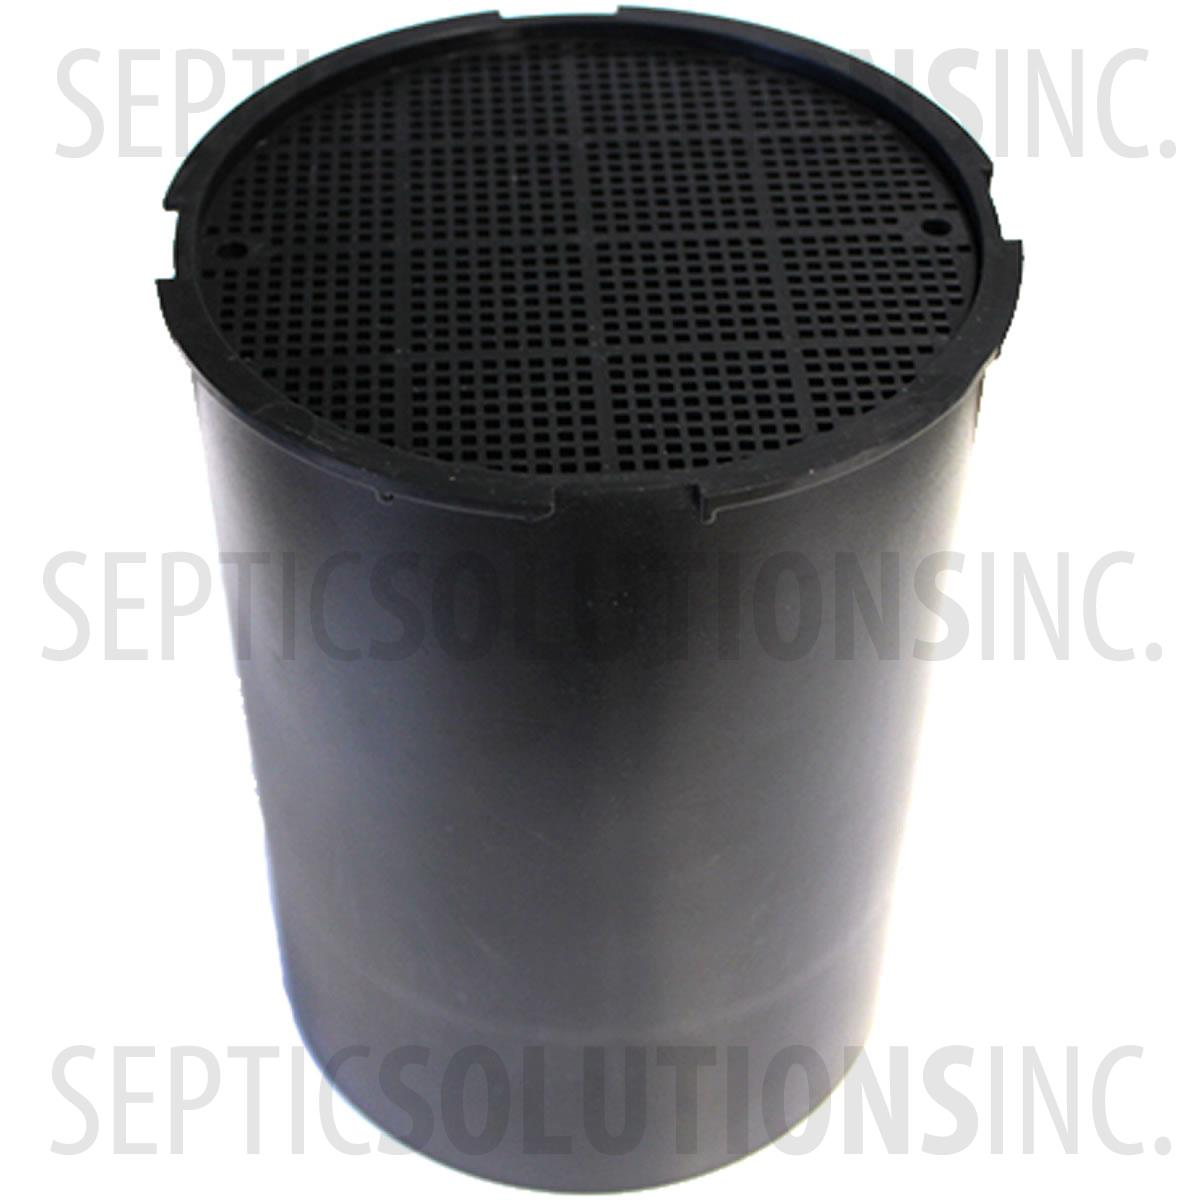 Vent Pipe Odor Filter For Vent Stacks Eliminate Sewer